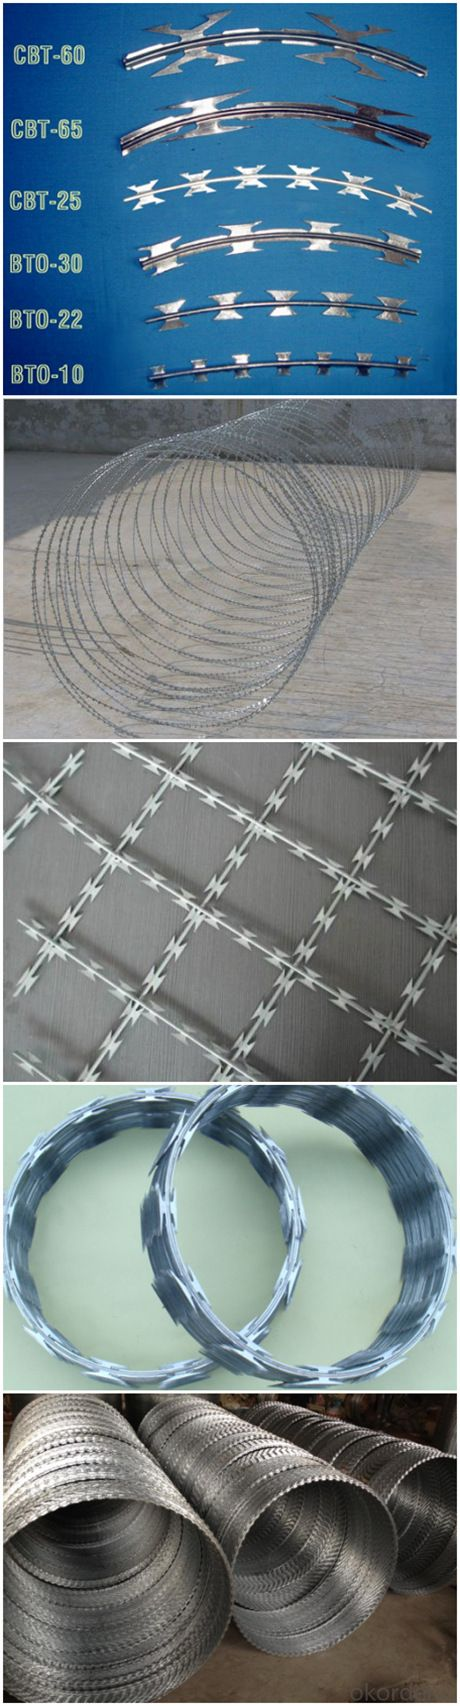 Factory Price Galvanized Razor Barbed Wire Made in China